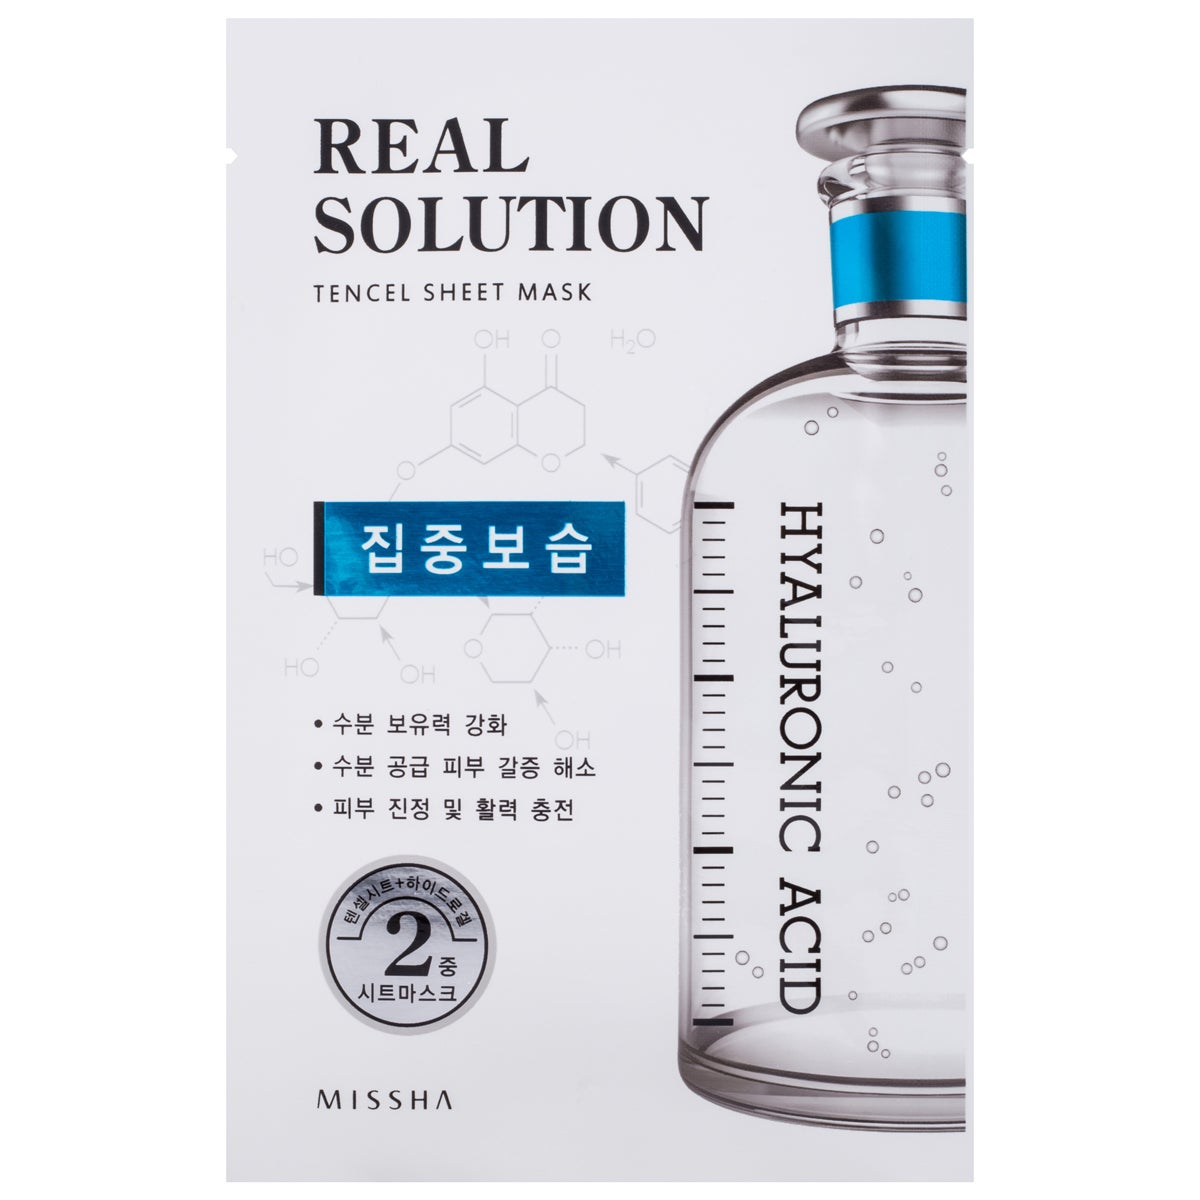 MISSHA Real Solution Tencel Sheet Mask (Intensive Moisturizing)